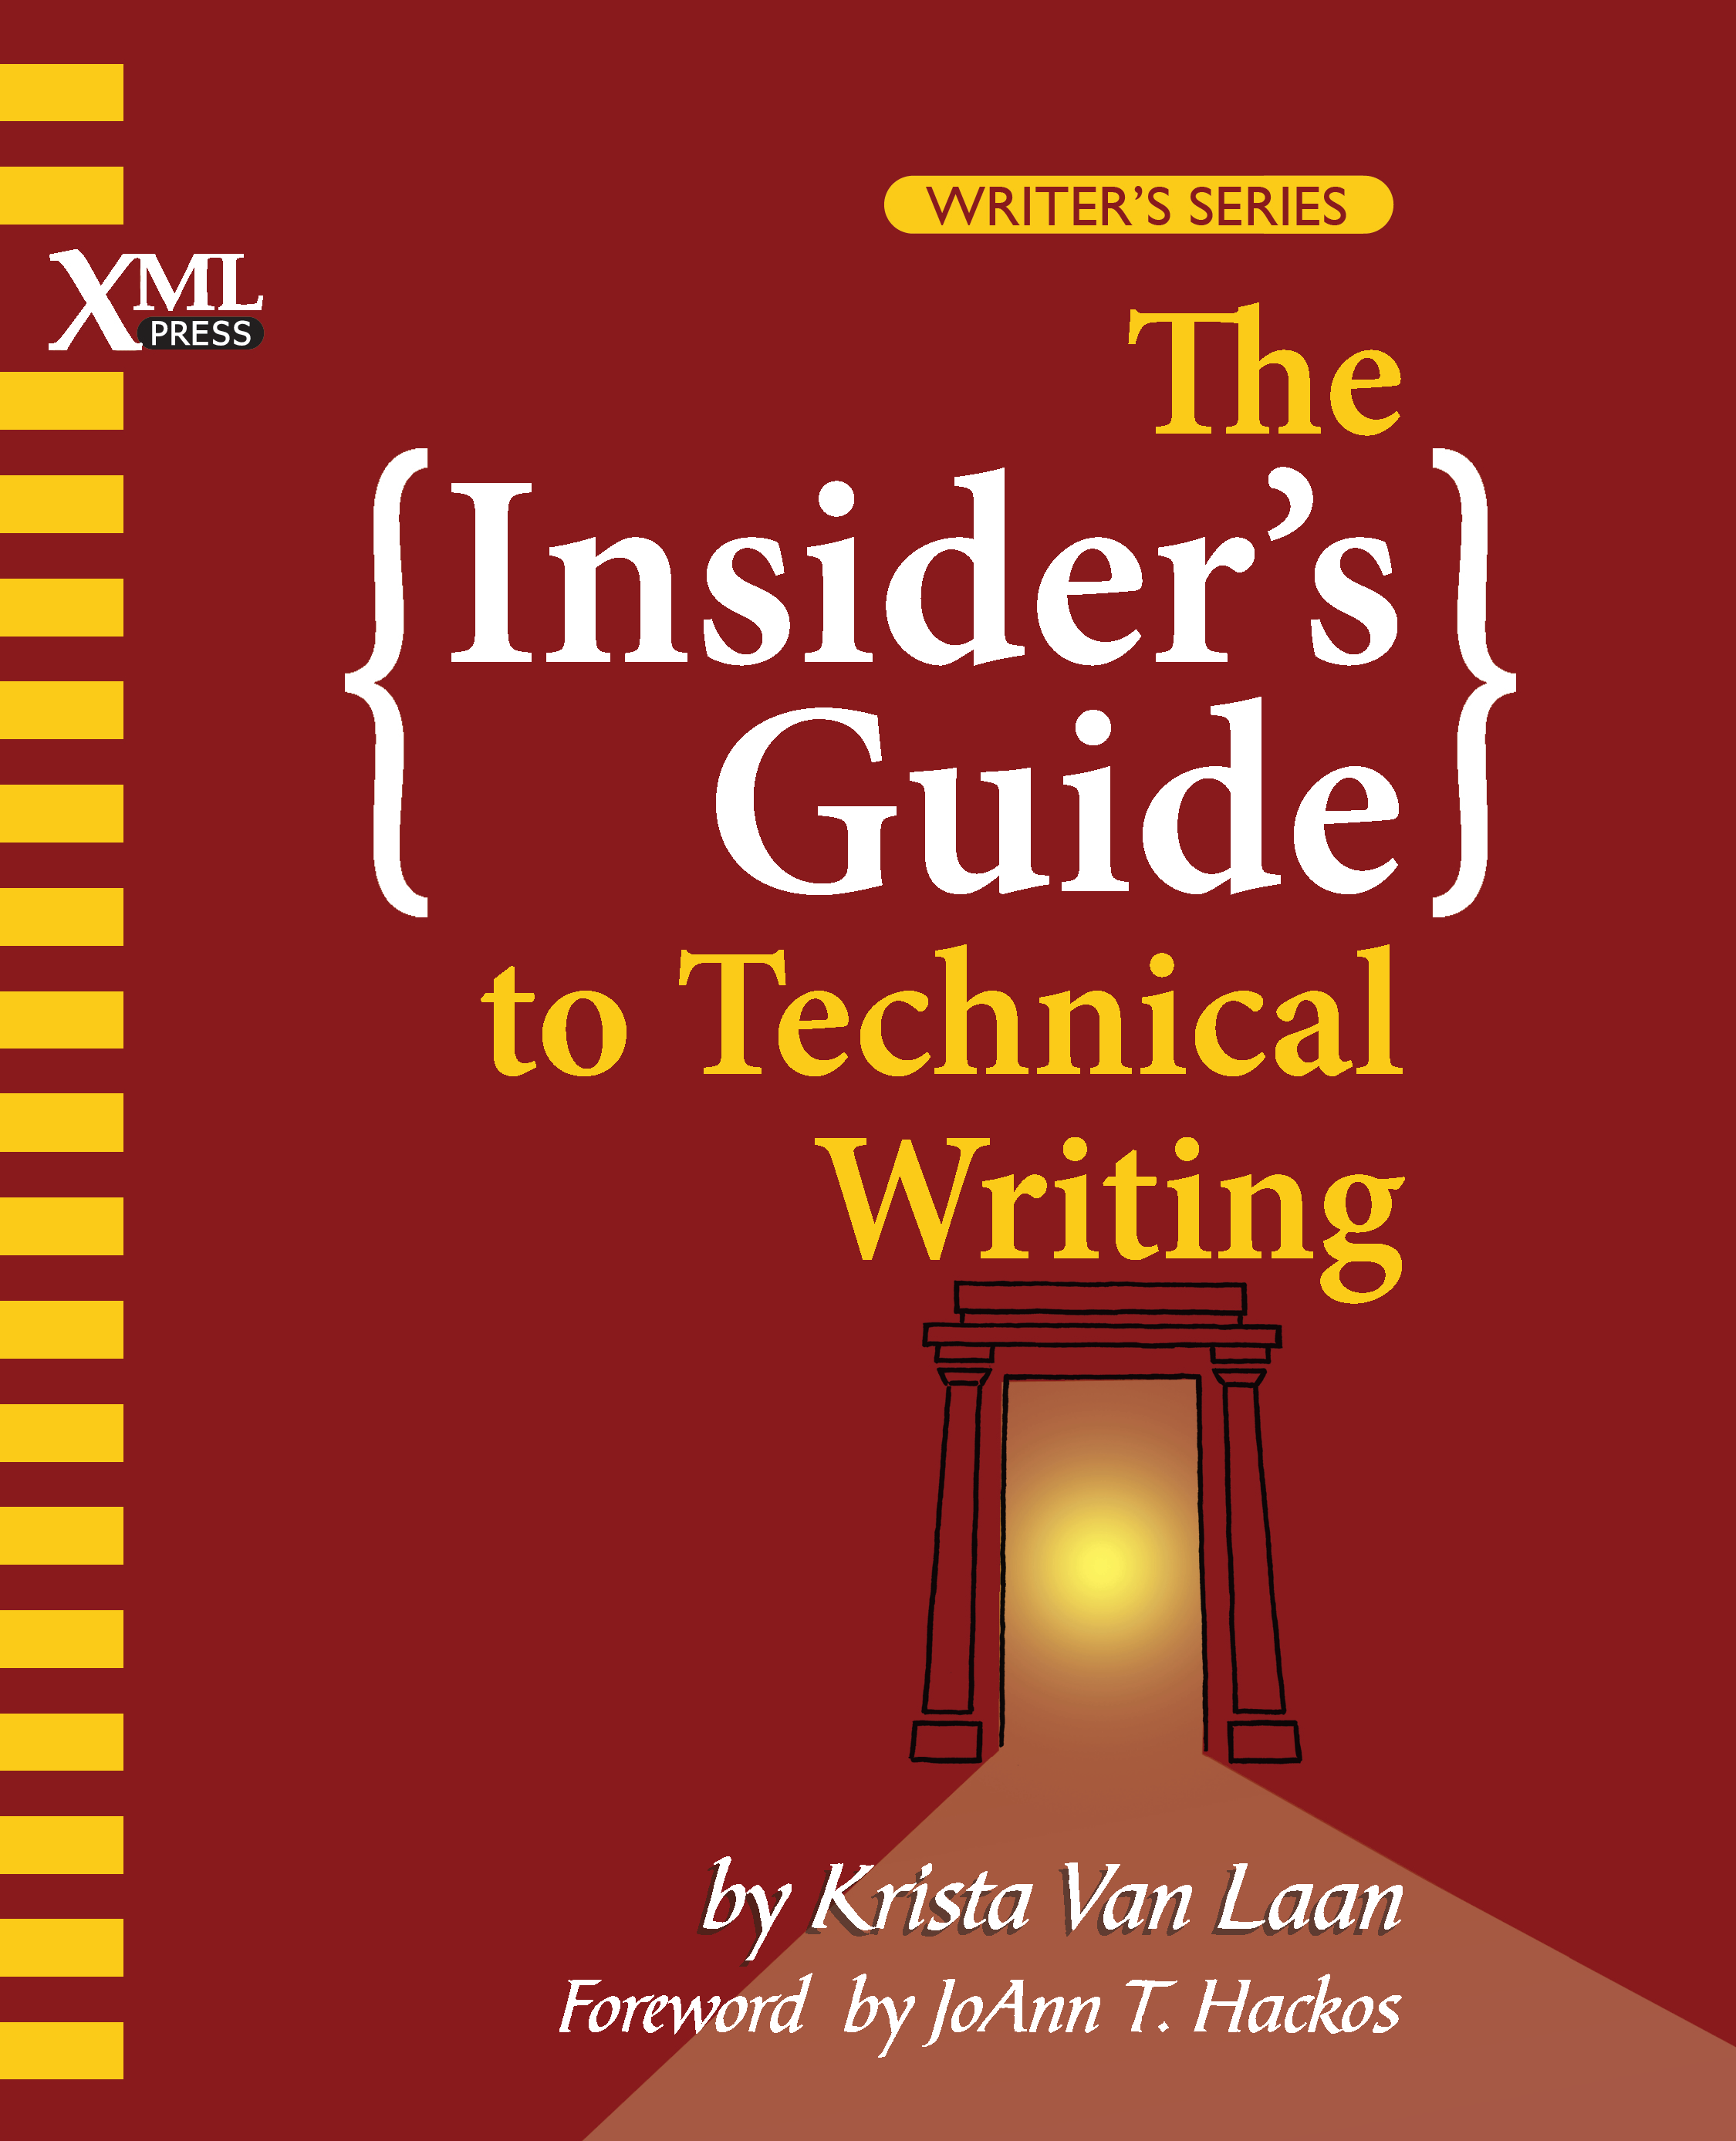 Book Cover Graphism Guide : The insider s guide to technical writing « xml press